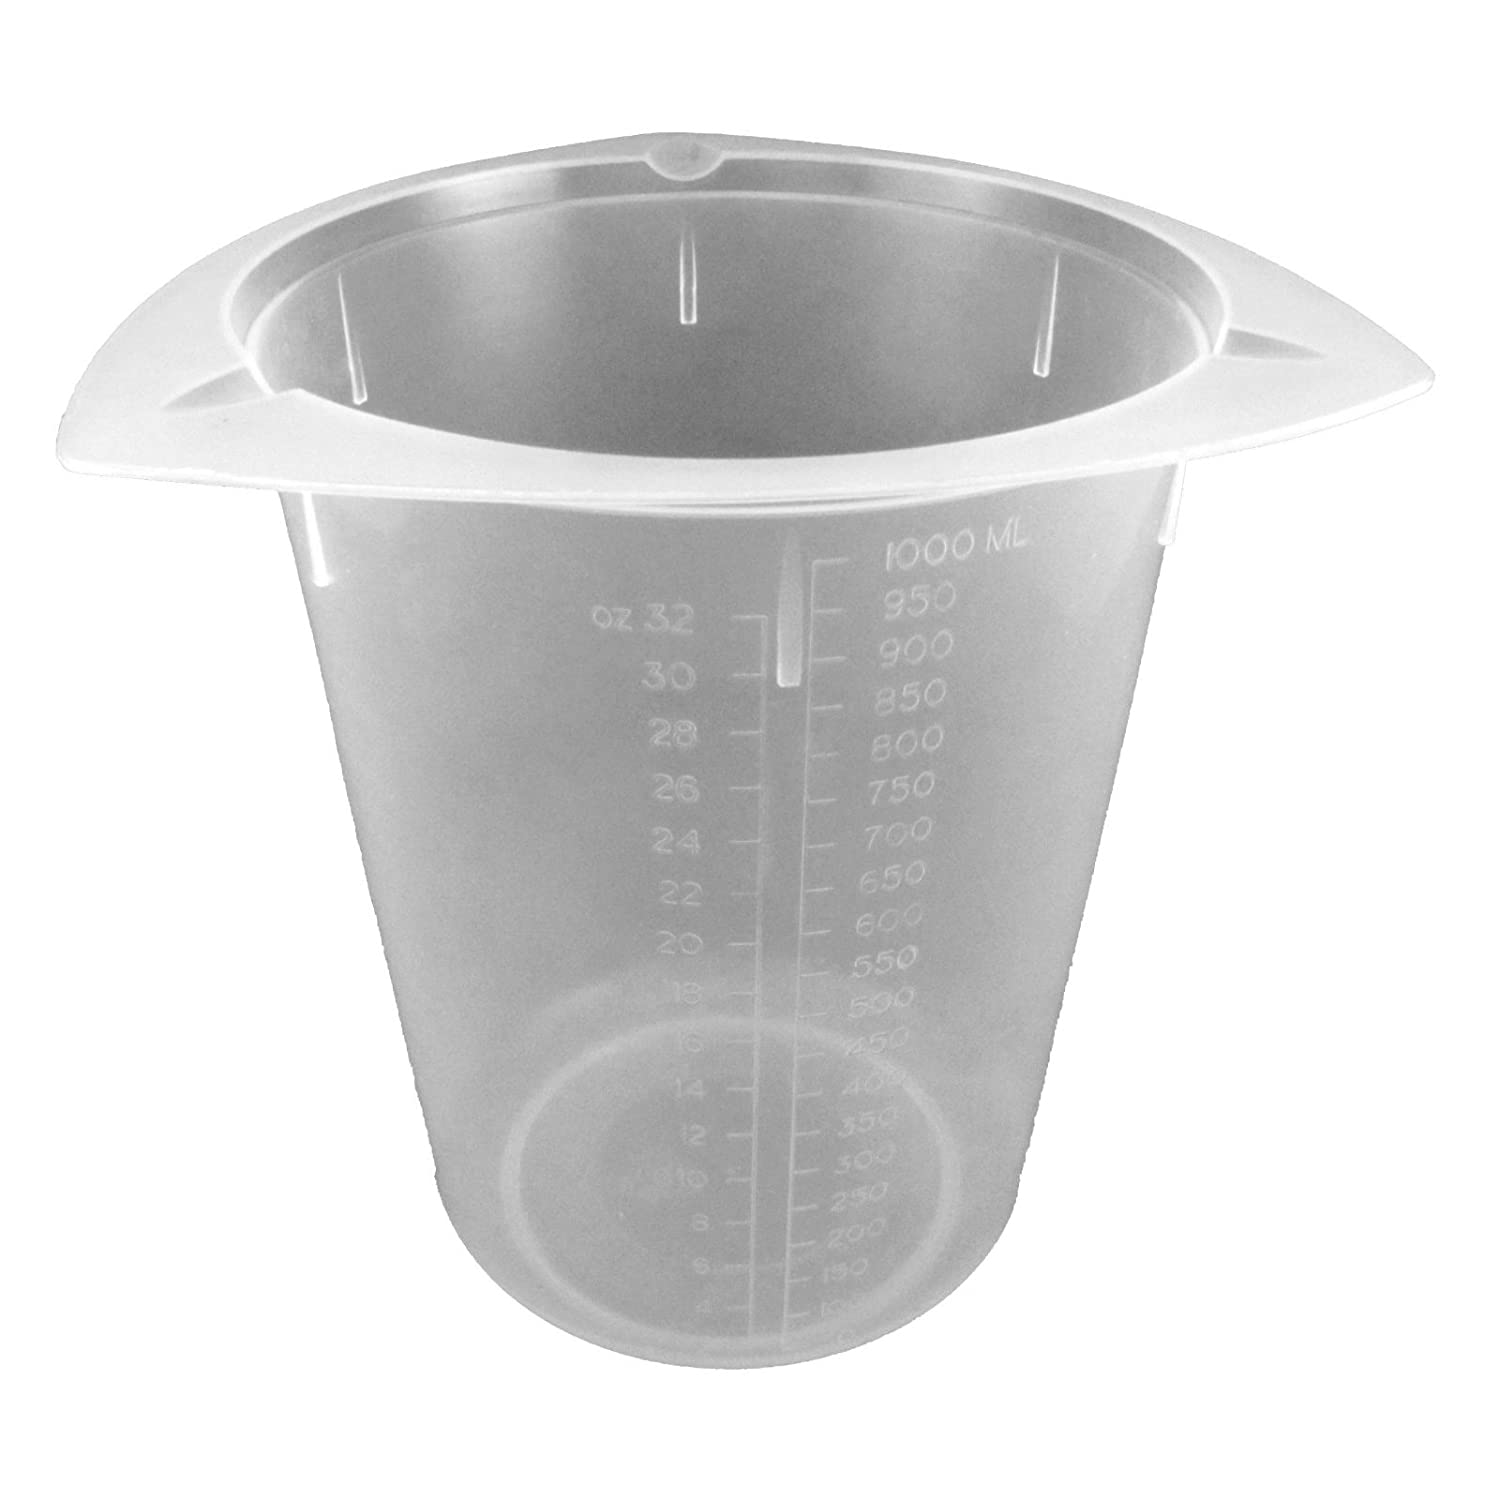 Dyn-A-Med 80092 Polypropylene Tri-Pour Disposable Beaker, 50mL Capacity (Case of 100)